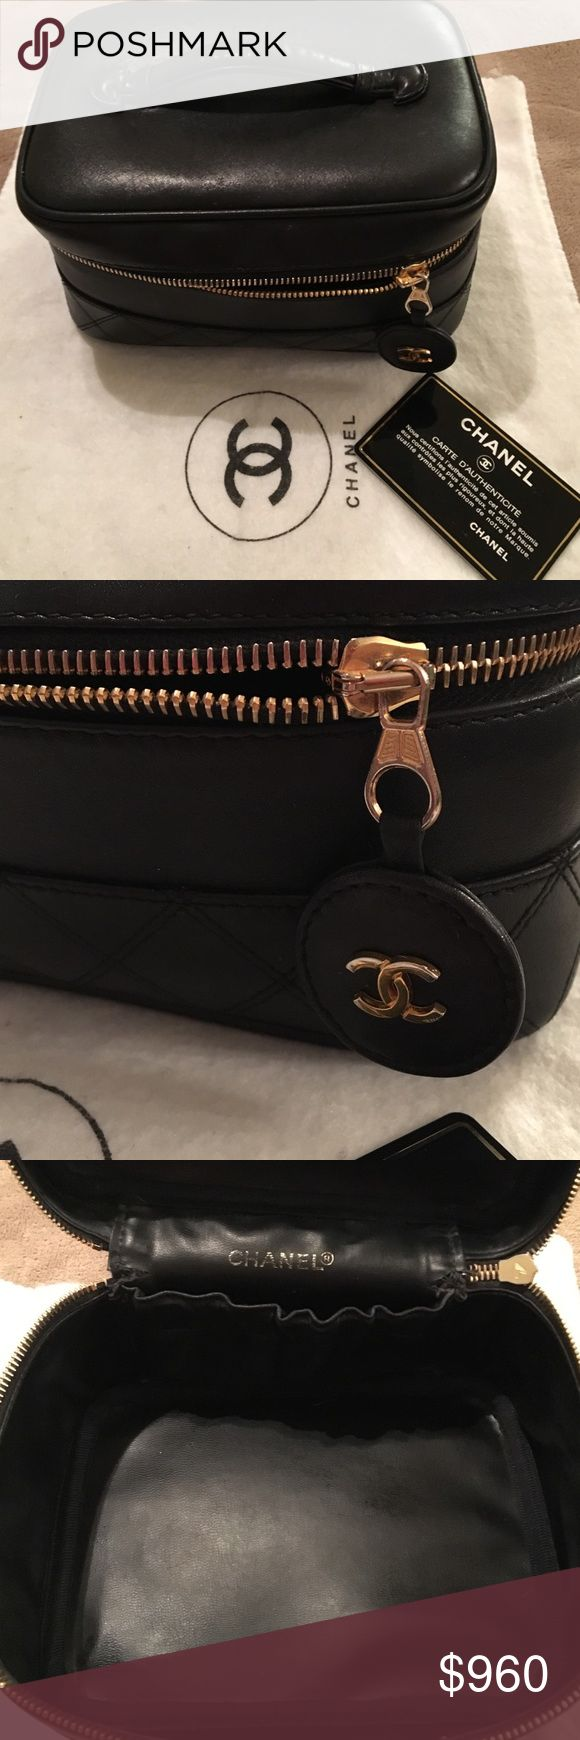 Authentic chanel quilted vanity bag